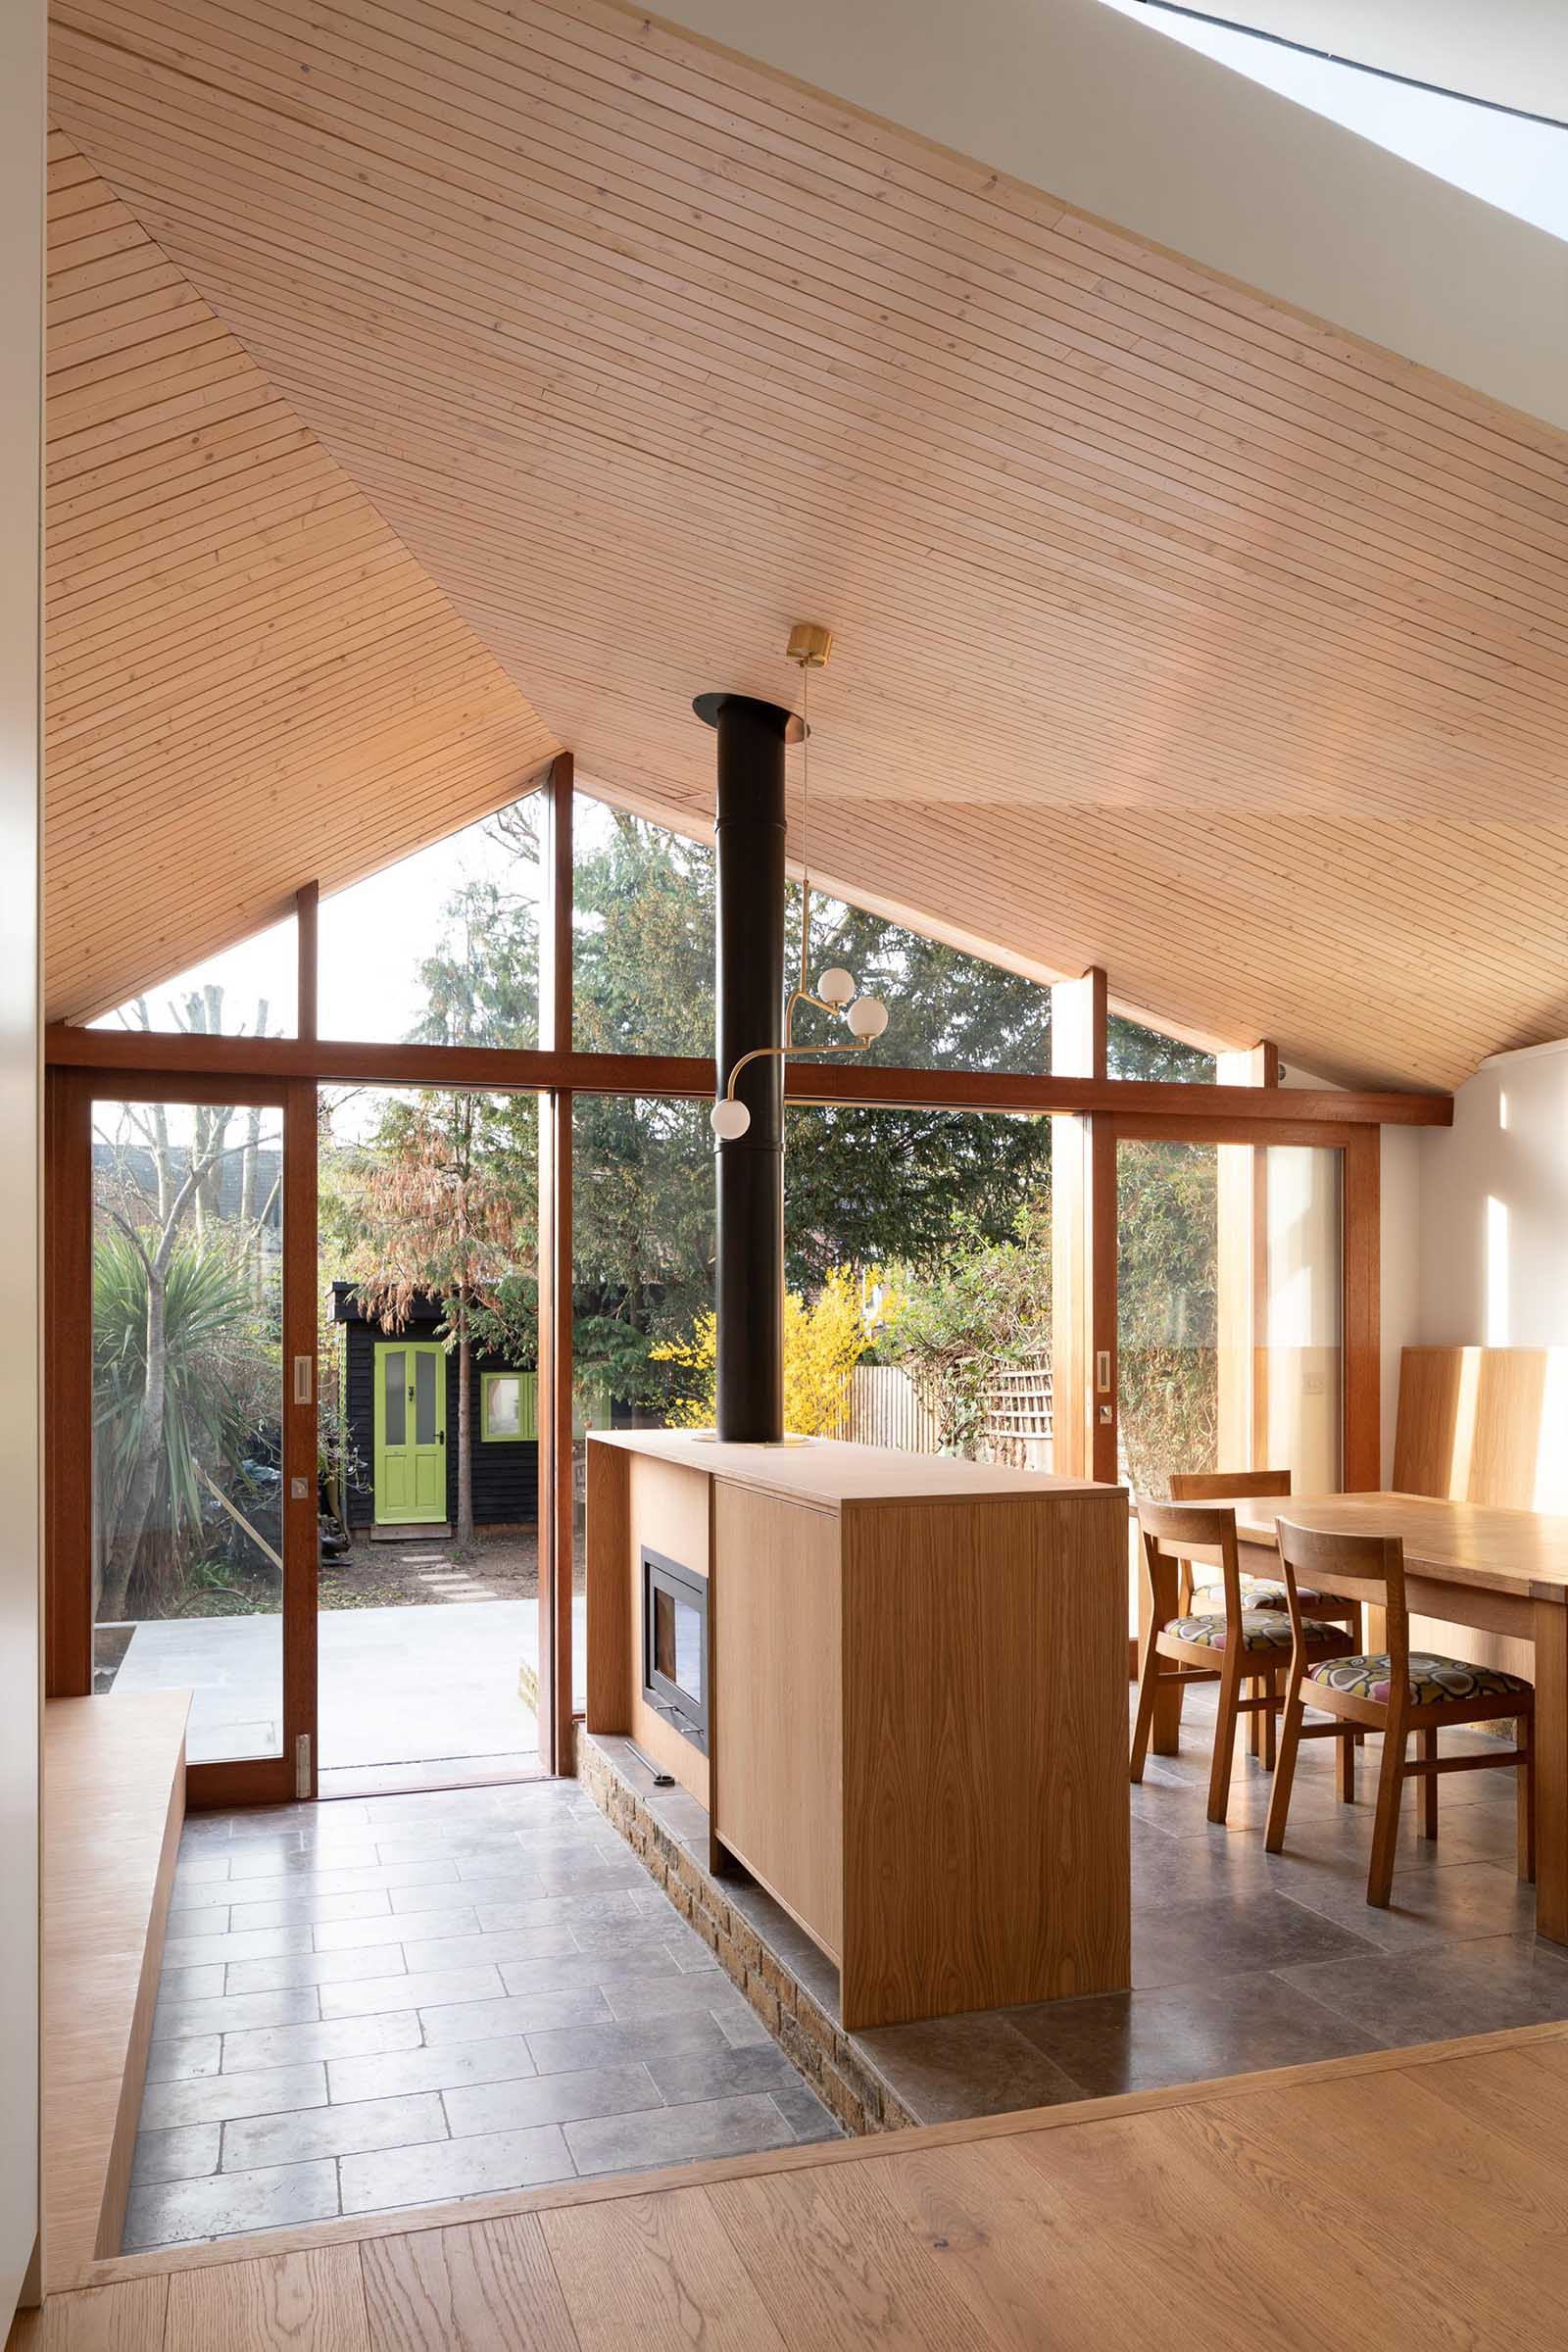 The interior of this new home addition includes an angled ceiling lined with light wood, which creates glimpses of the sky in different directions.